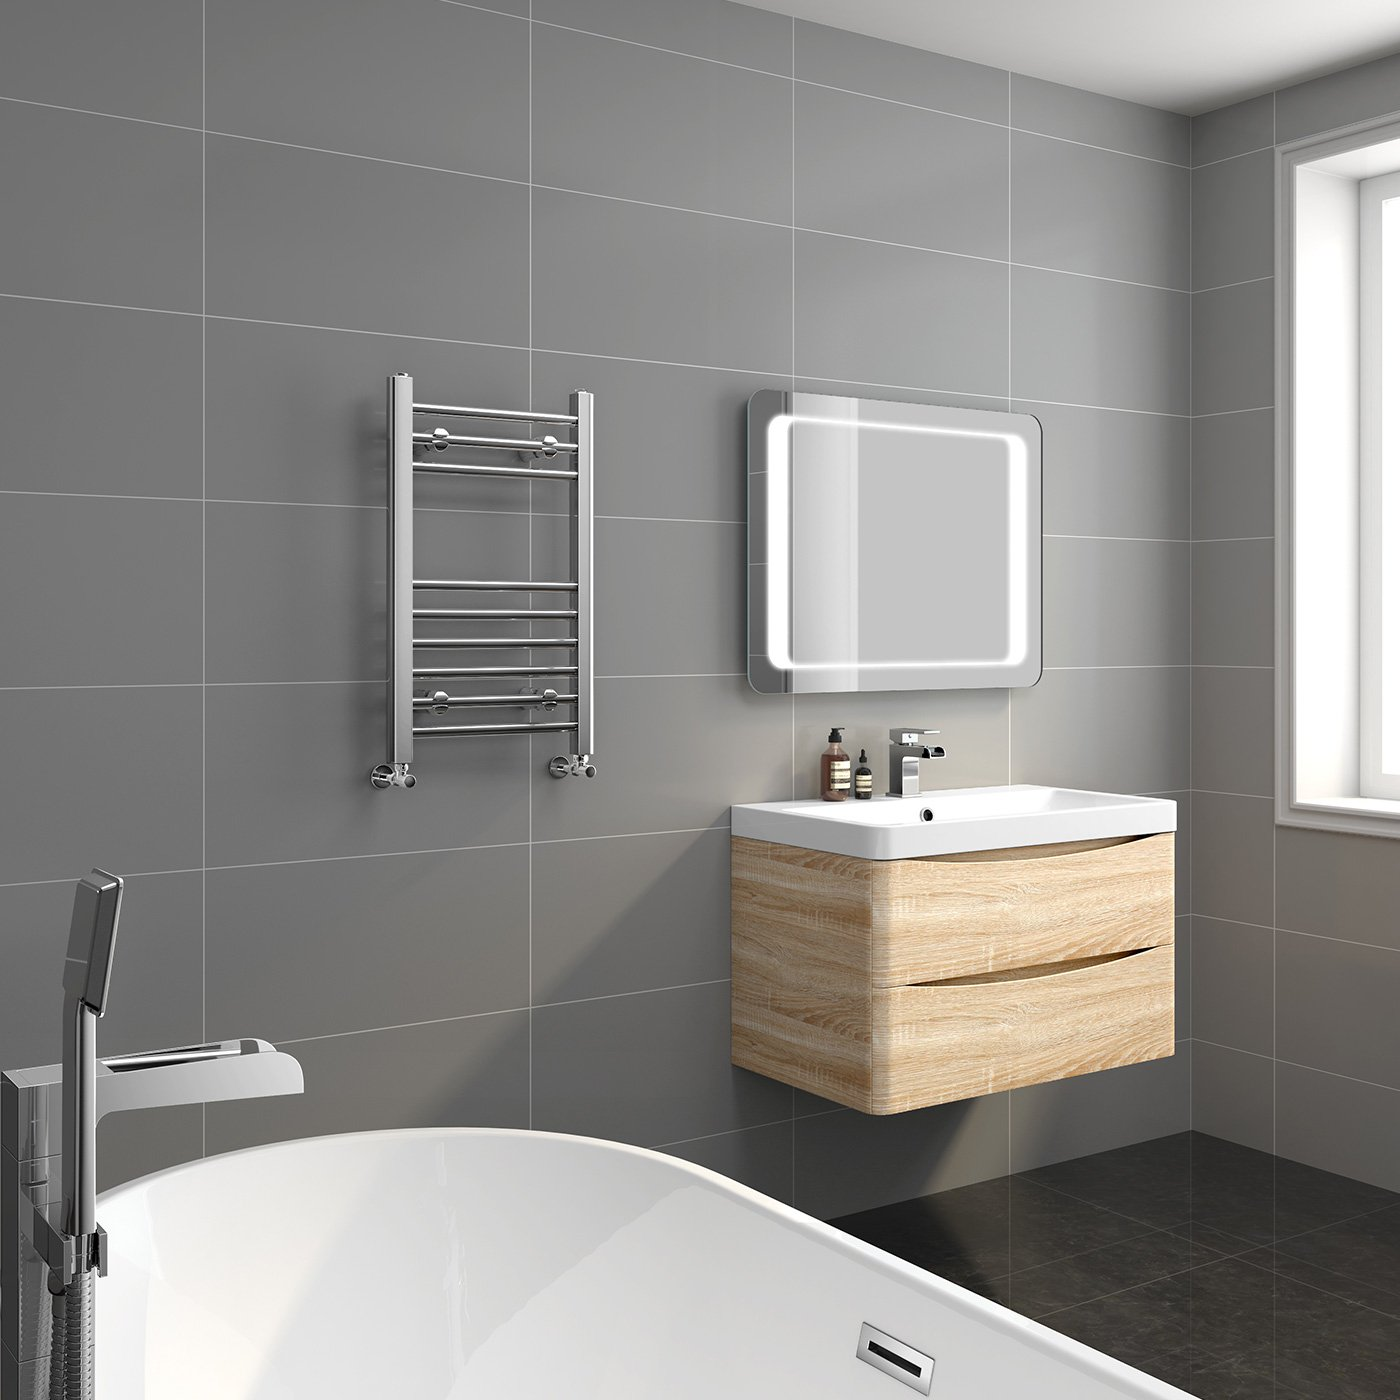 iBathUK   650 x 400 Straight Heated Towel Rail Chrome Bathroom Radiator    All Sizes NS650400  iBathUK  Amazon co uk  DIY   Tools. iBathUK   650 x 400 Straight Heated Towel Rail Chrome Bathroom